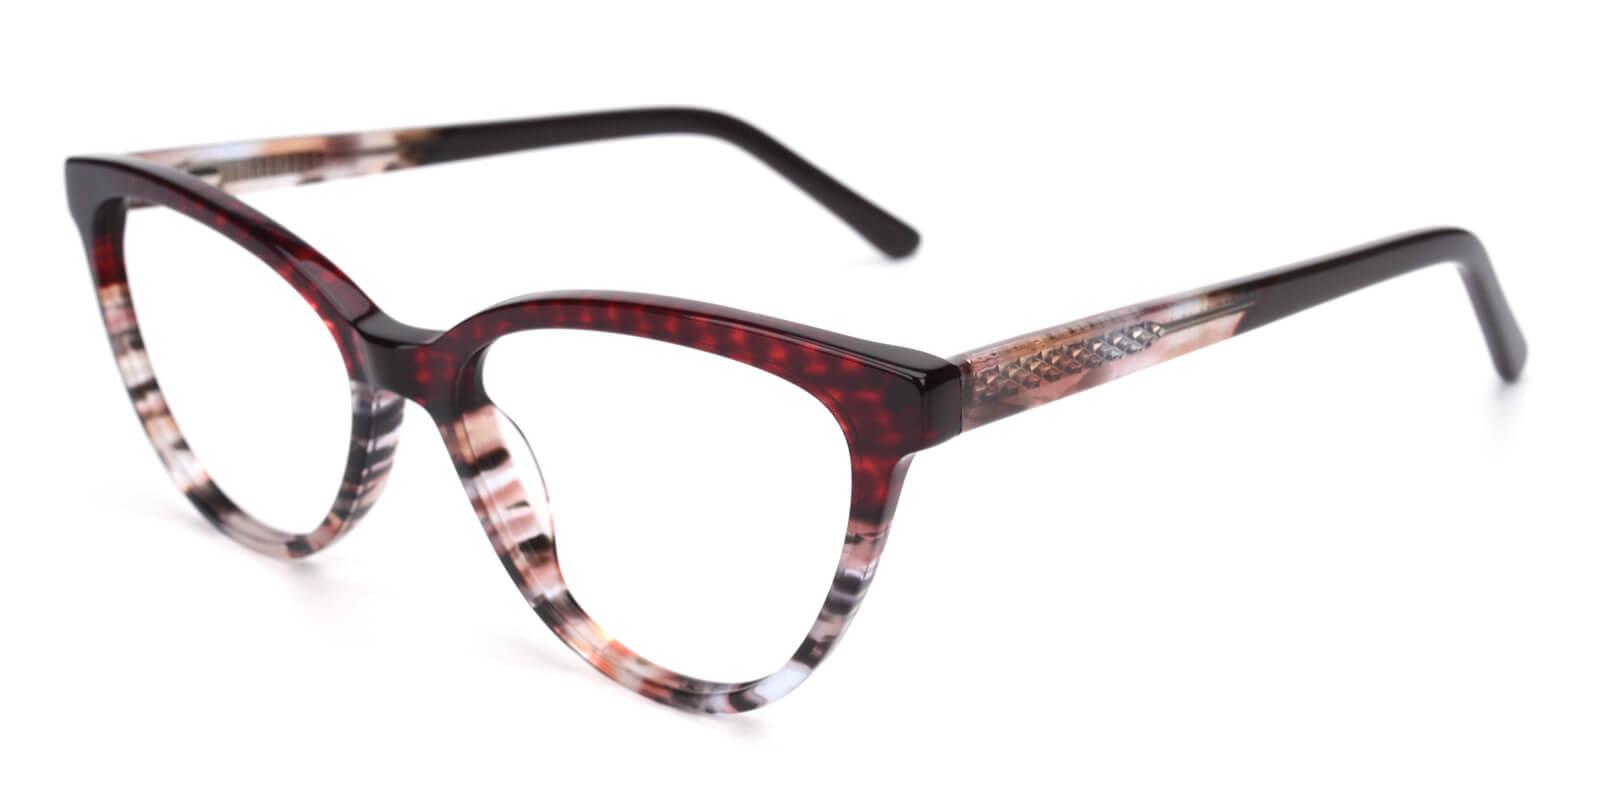 Daphnely-Red-Oval / Cat-Acetate-Eyeglasses-detail